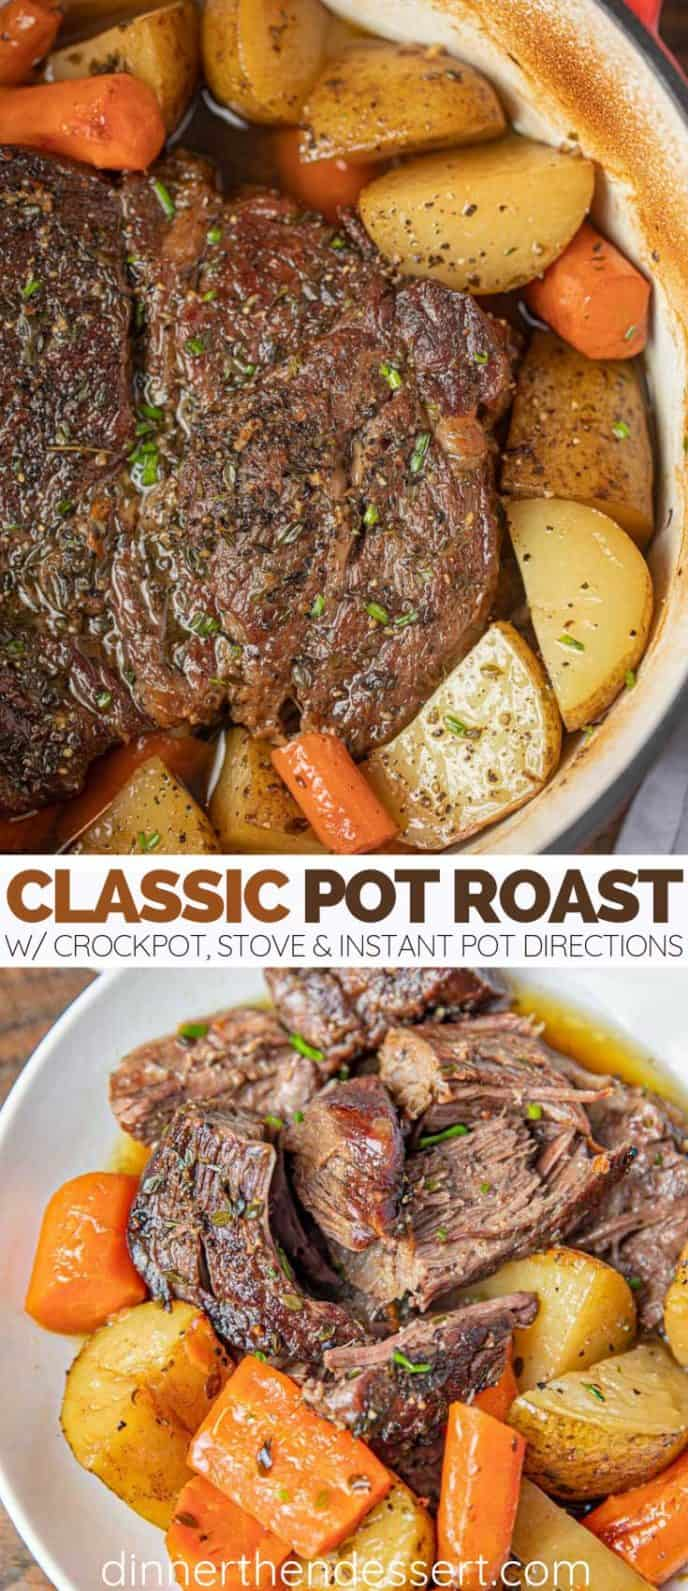 The Best and Classic Pot Roast with Vegetables